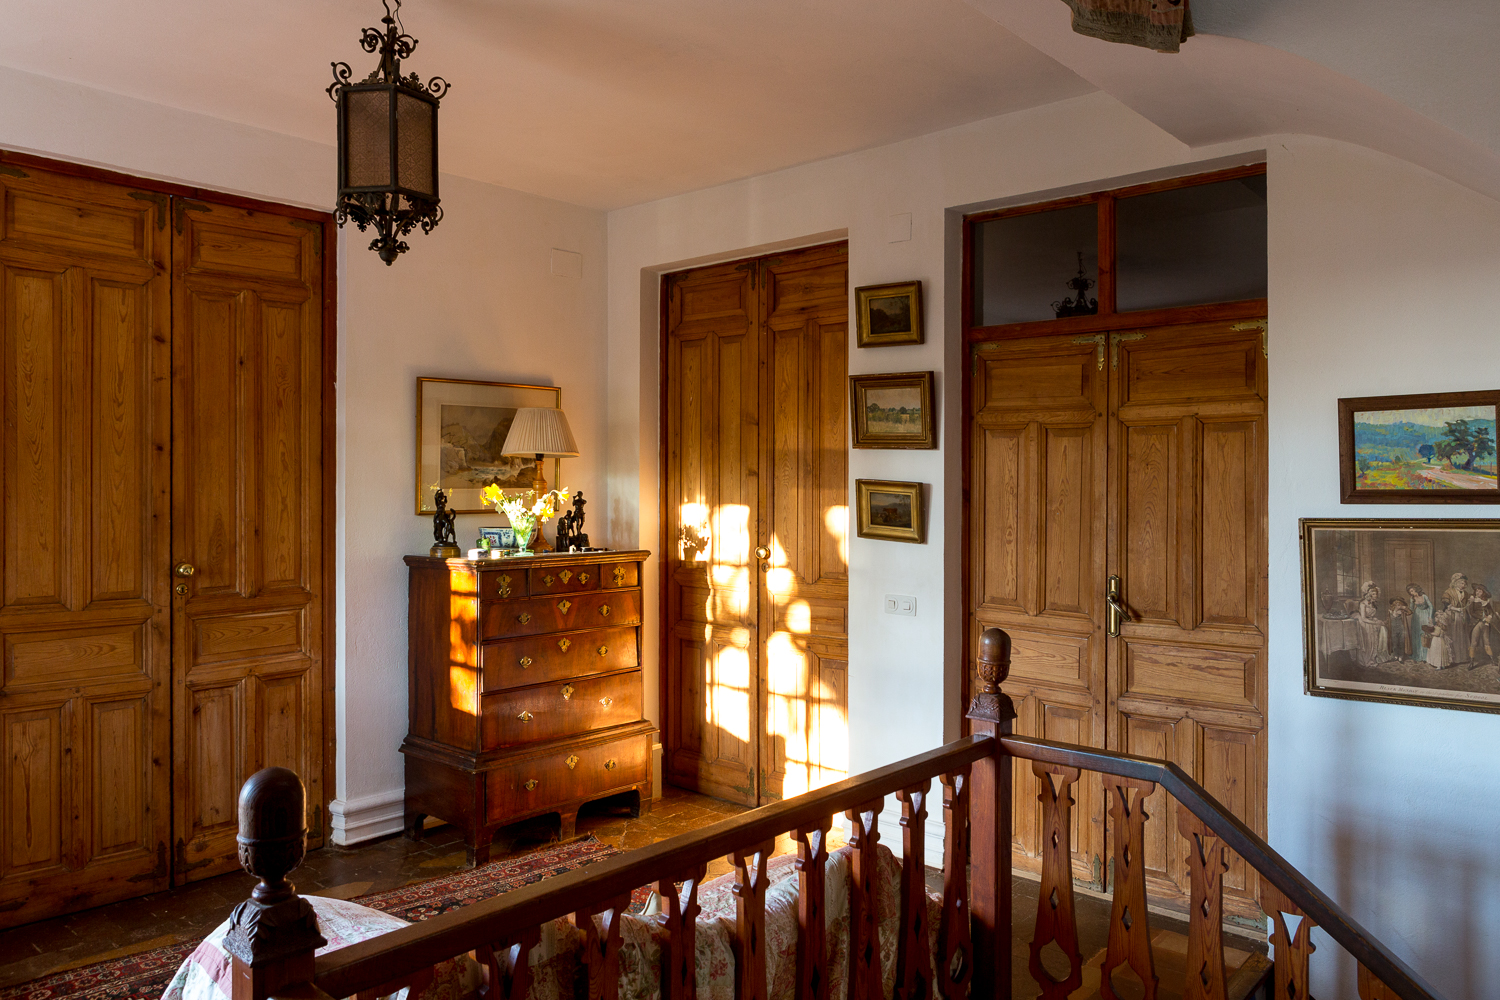 The upstairs hall, B&B near Seville